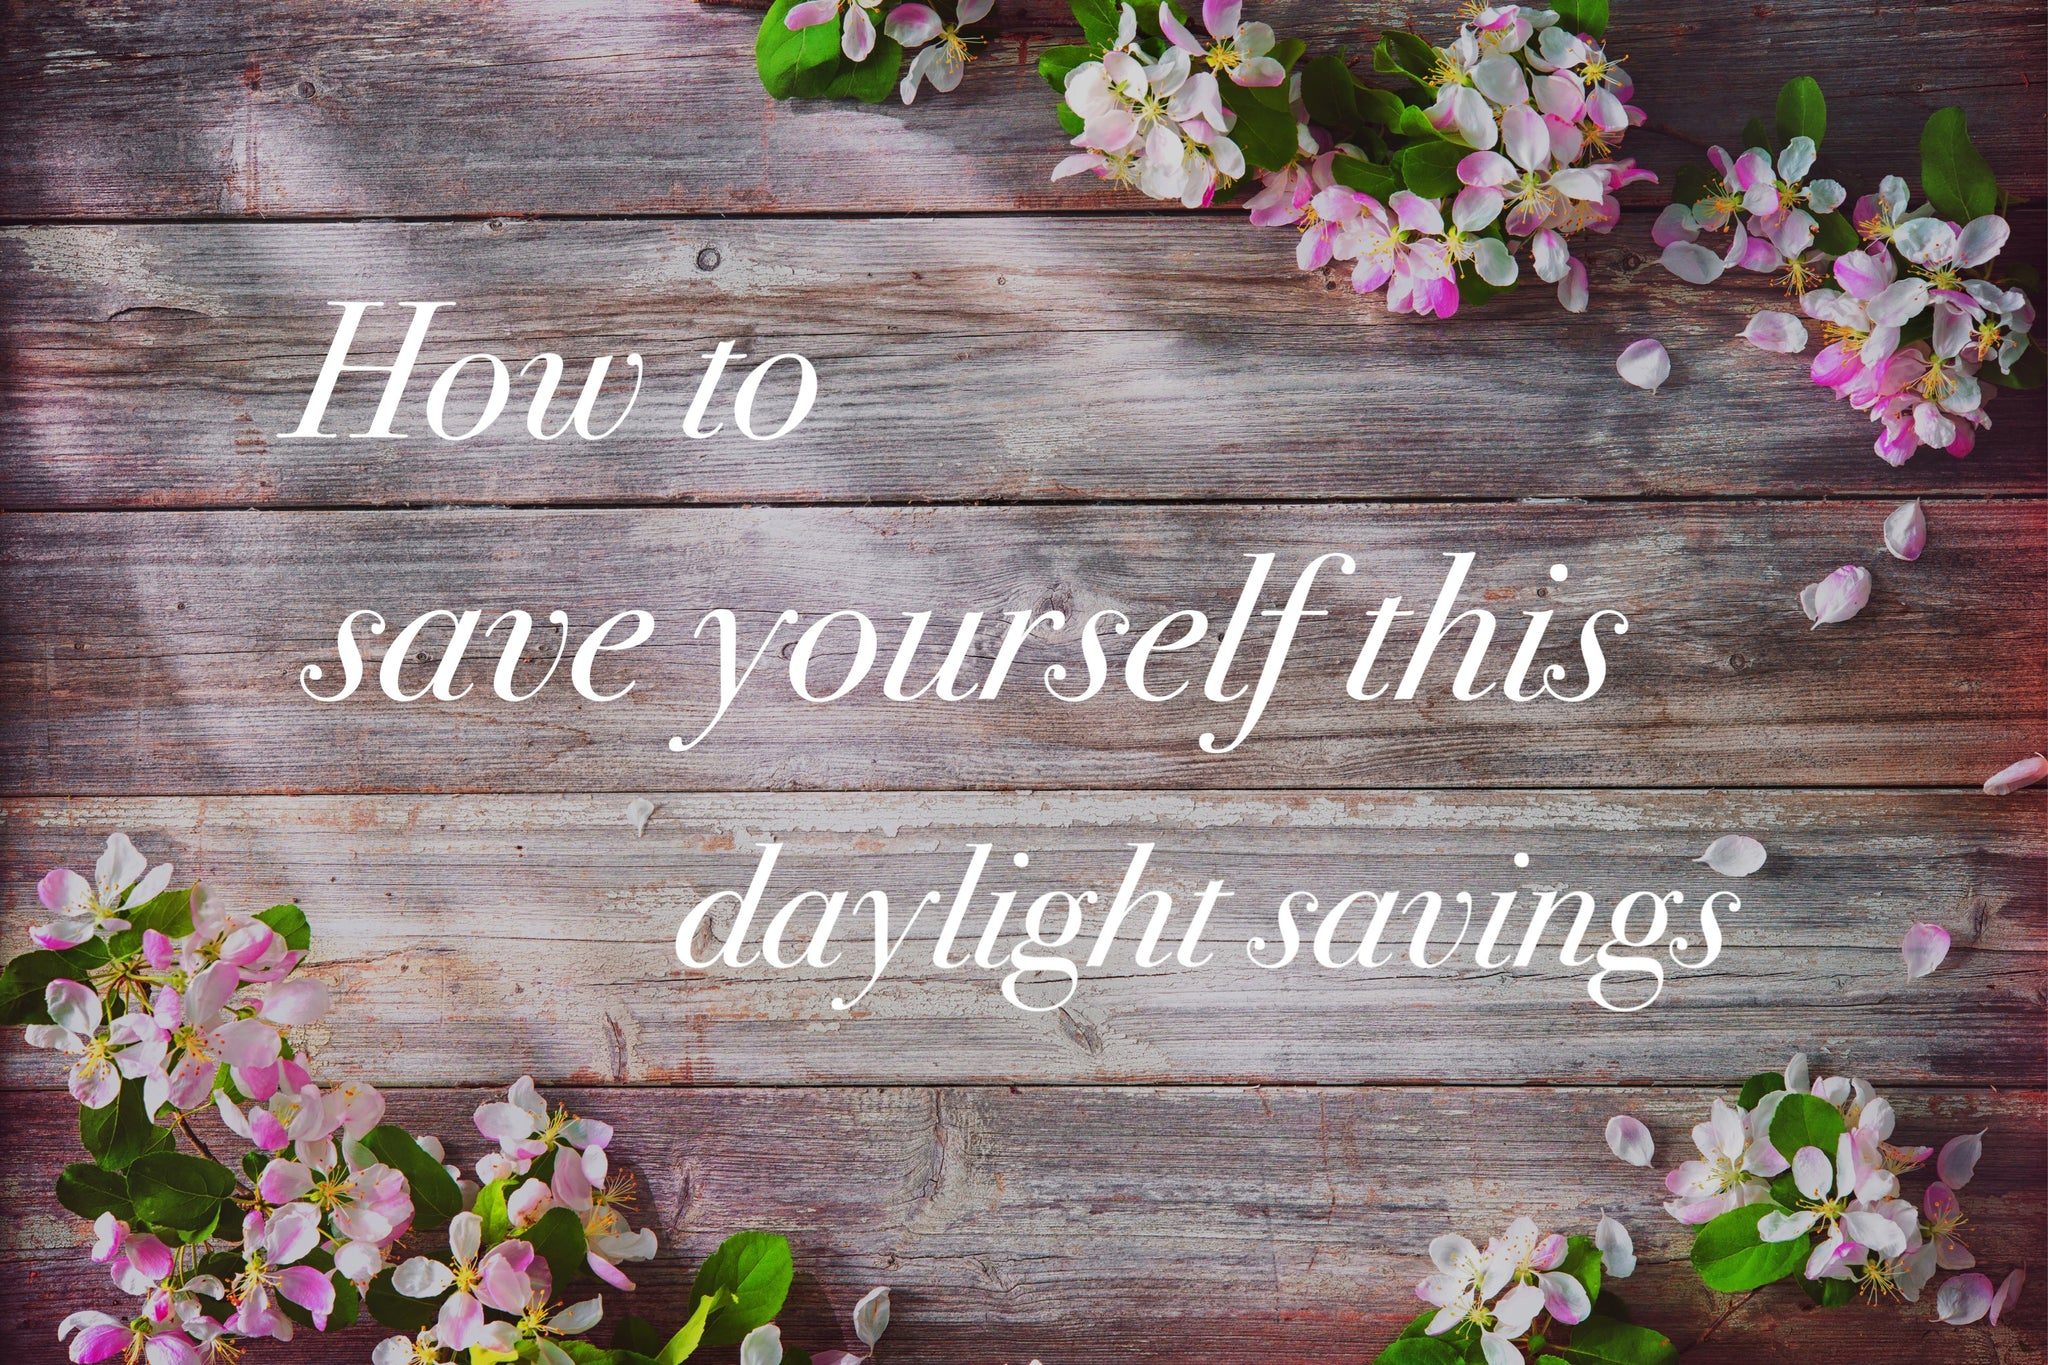 Save Yourself This Daylight Savings